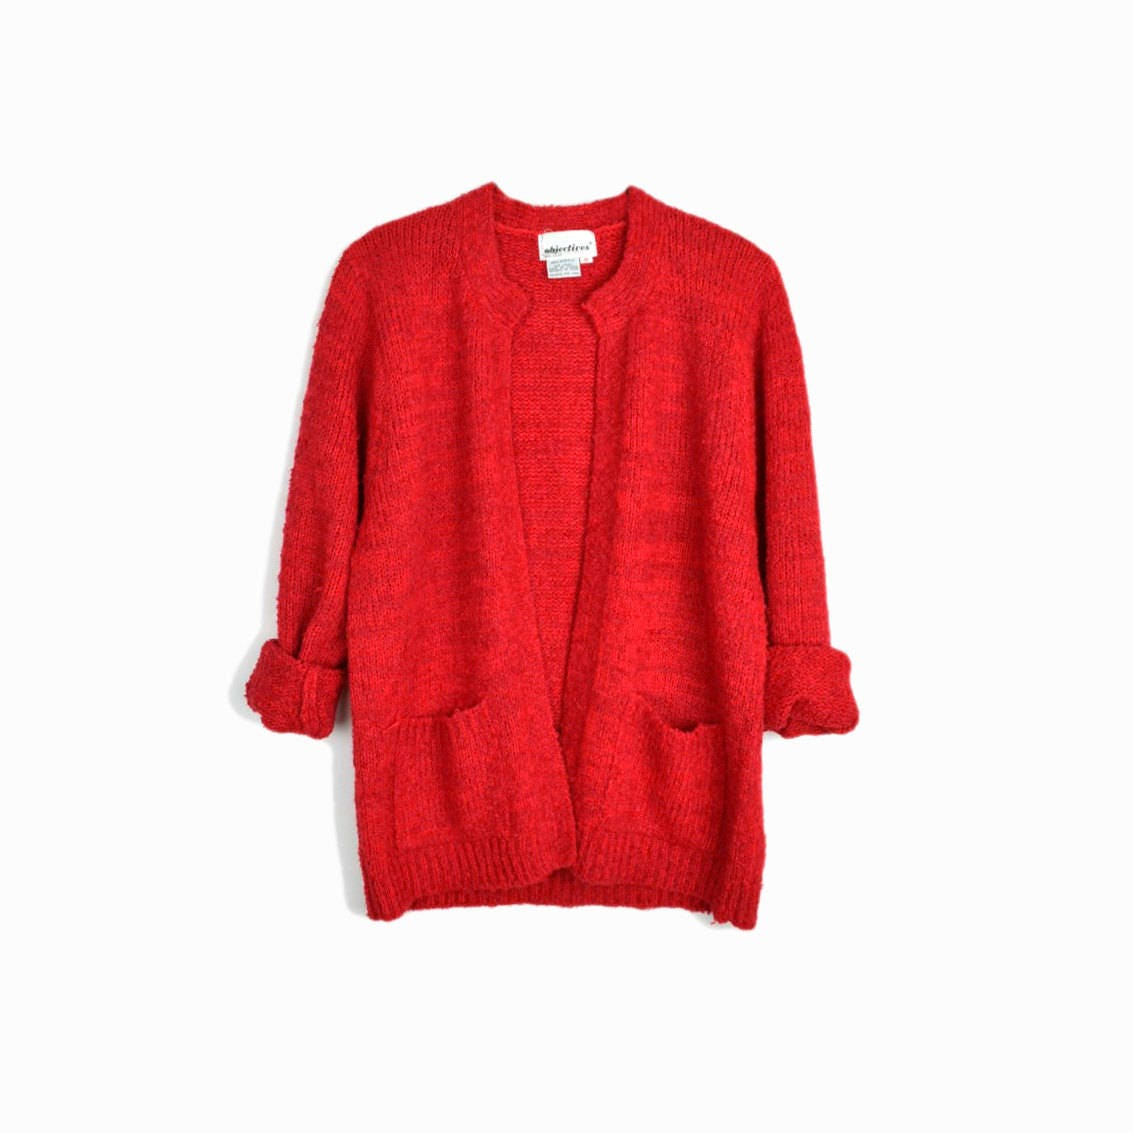 Vintage Red Boucle Sweater / Boucle Cardigan Sweater